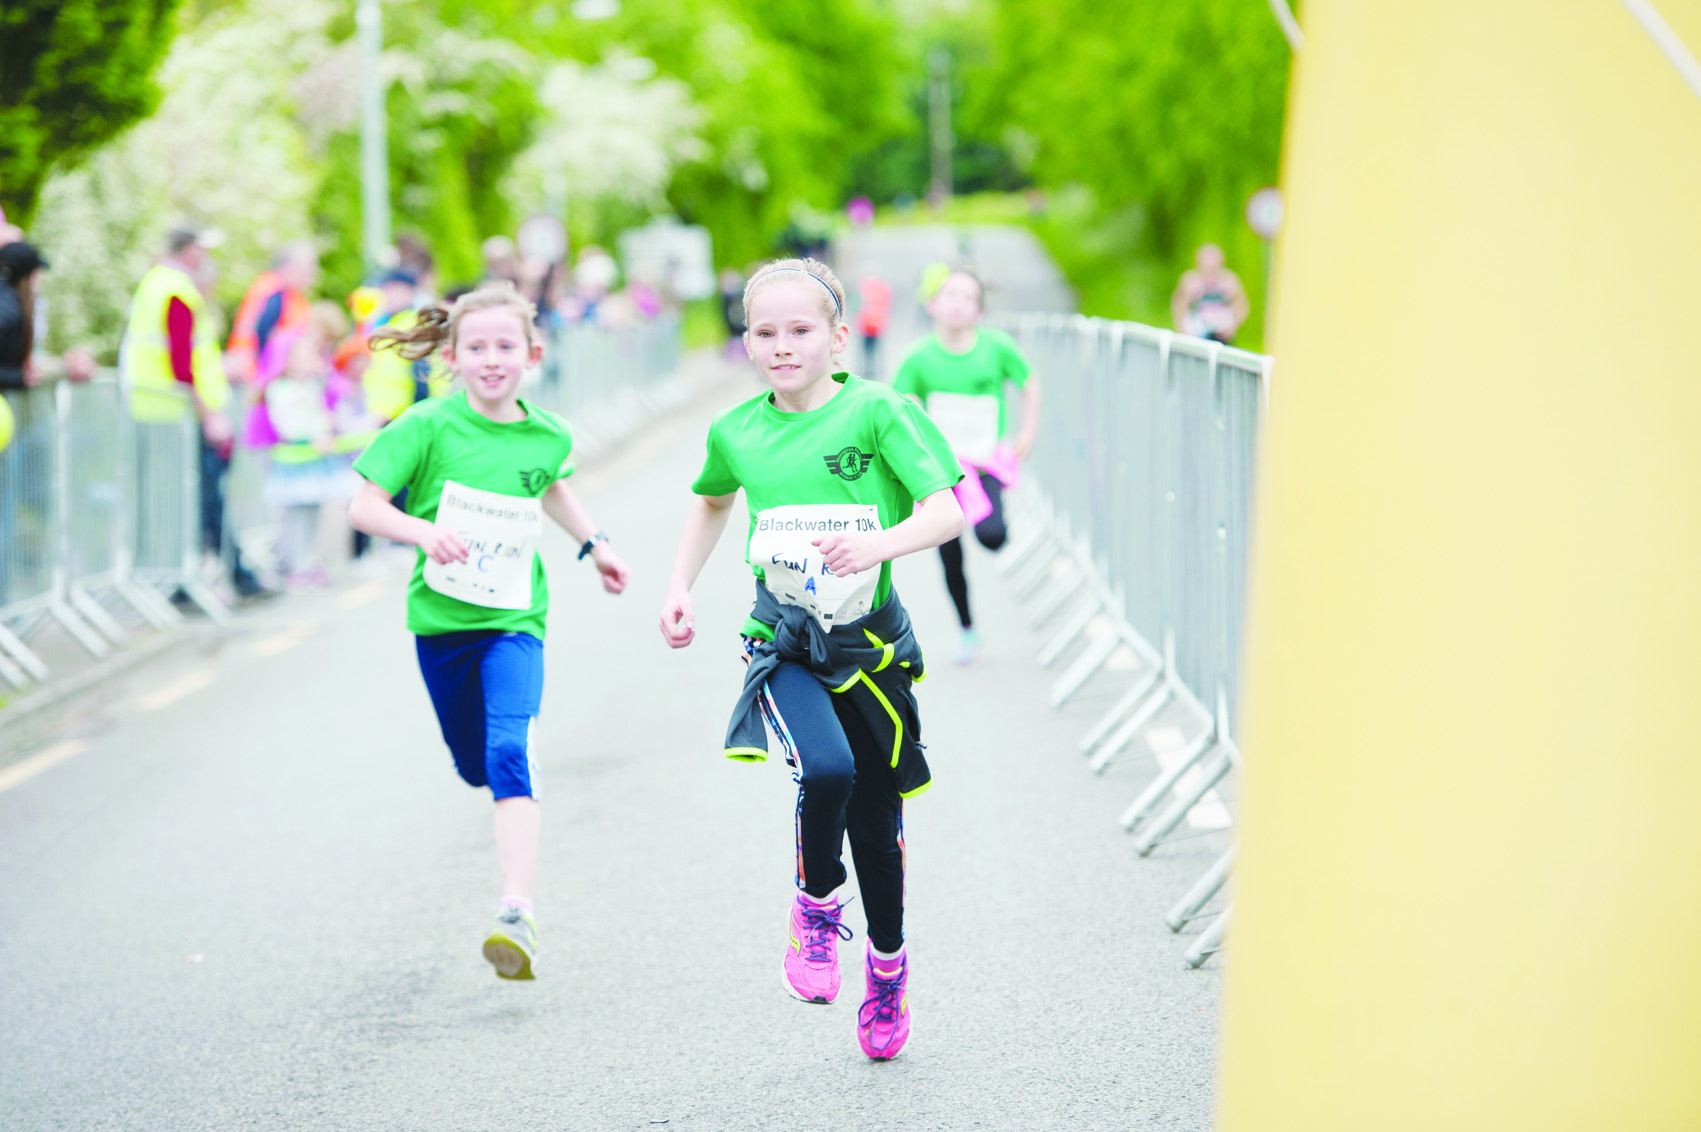 Some of the fun runners finishing the 5k. ©Rory Geary/The Northern Standard